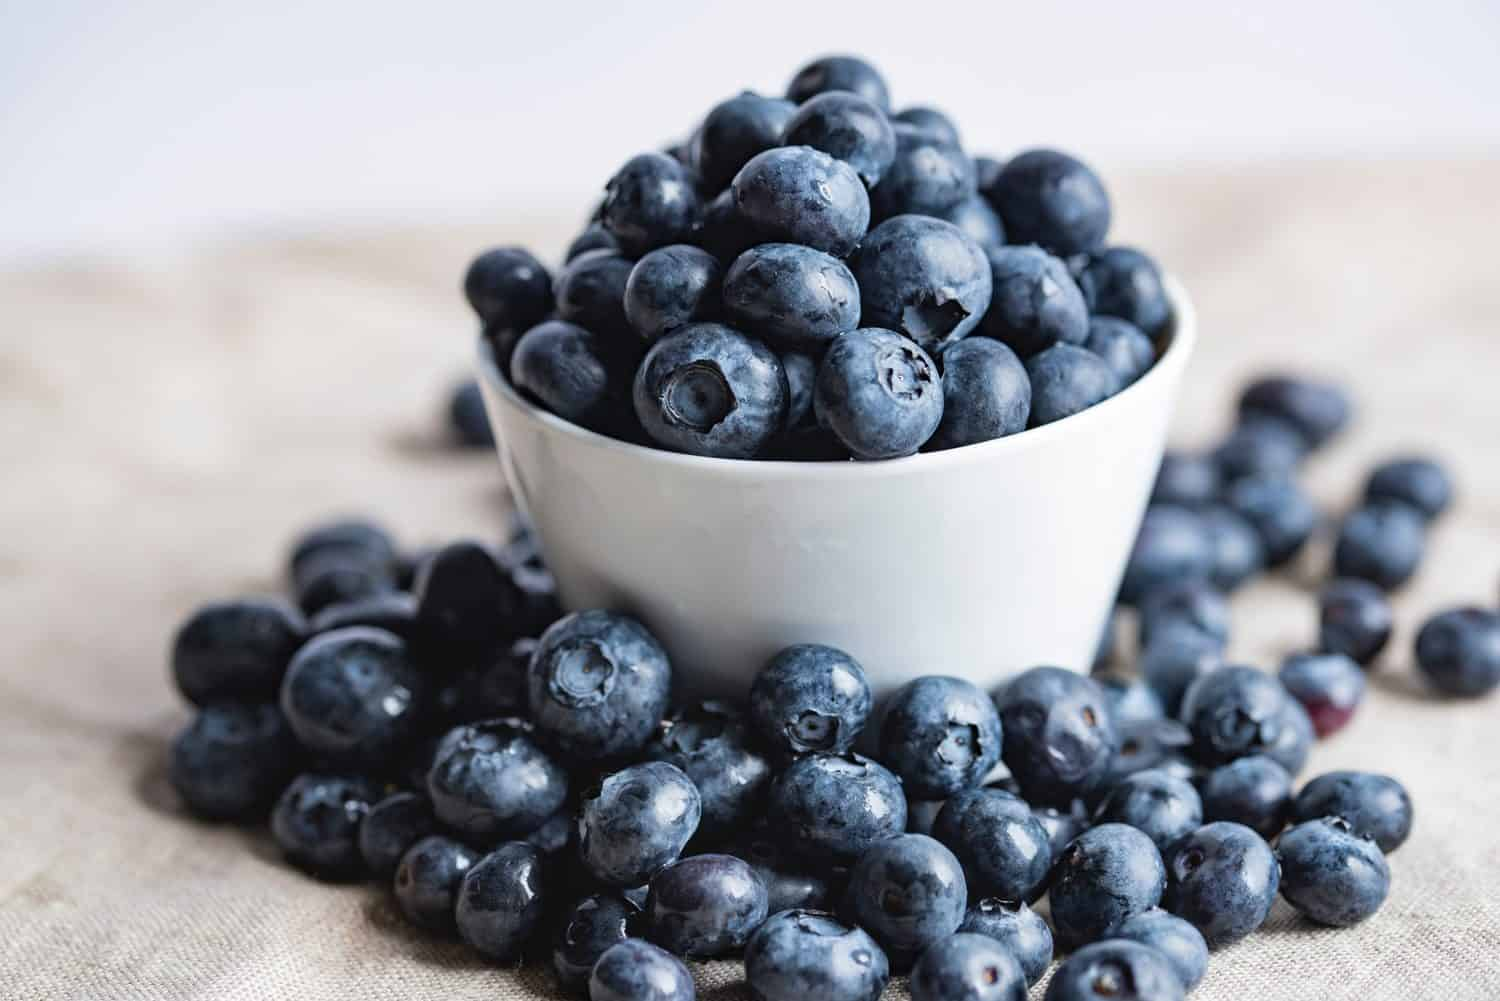 Swap out high sugar fruit such as grapes, mango and bananas with blueberries which are low in sugar.